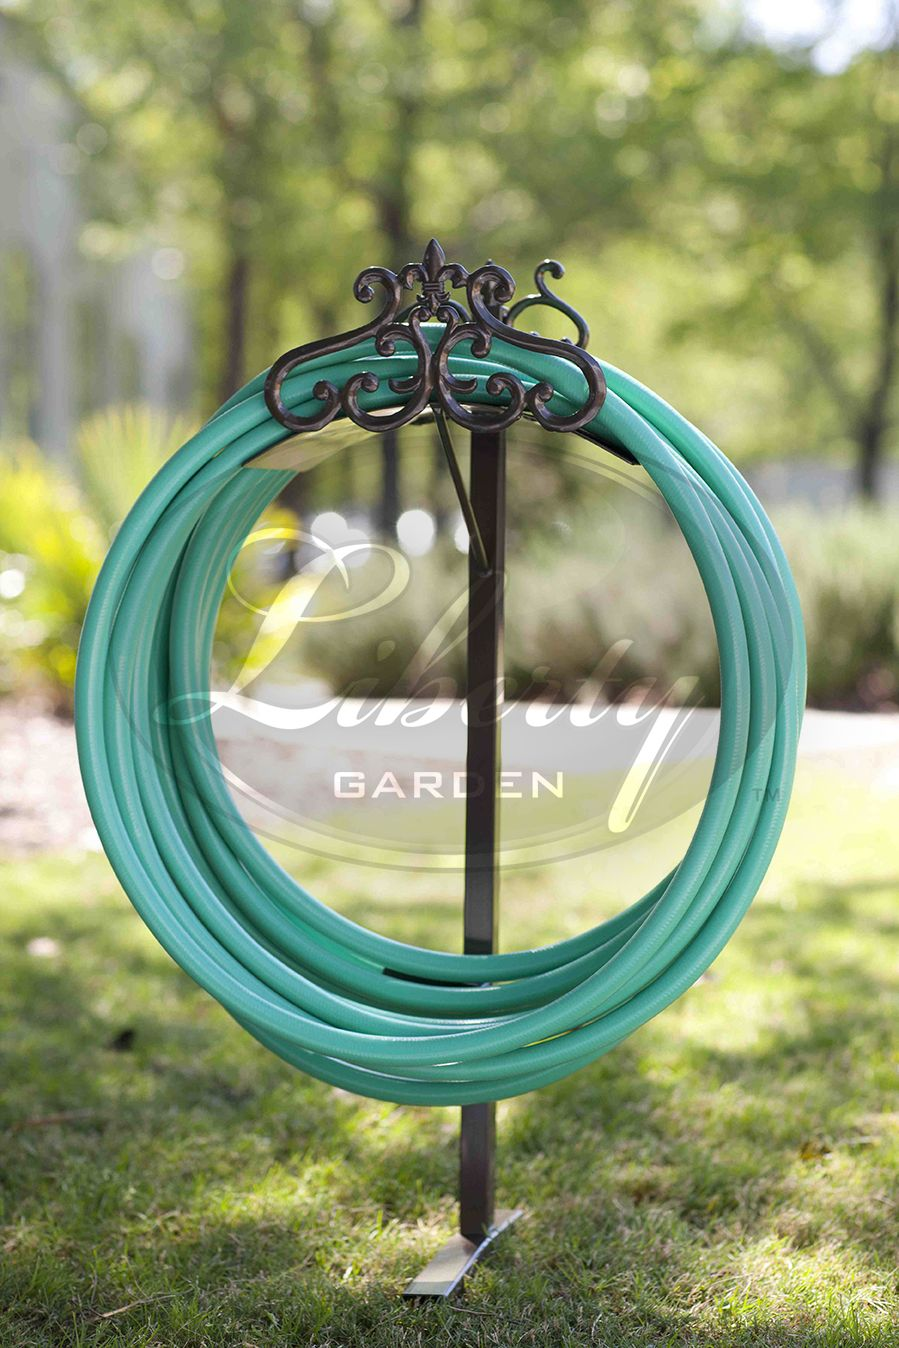 The Hyde Park Decorative Hose Stand compliments any lawn